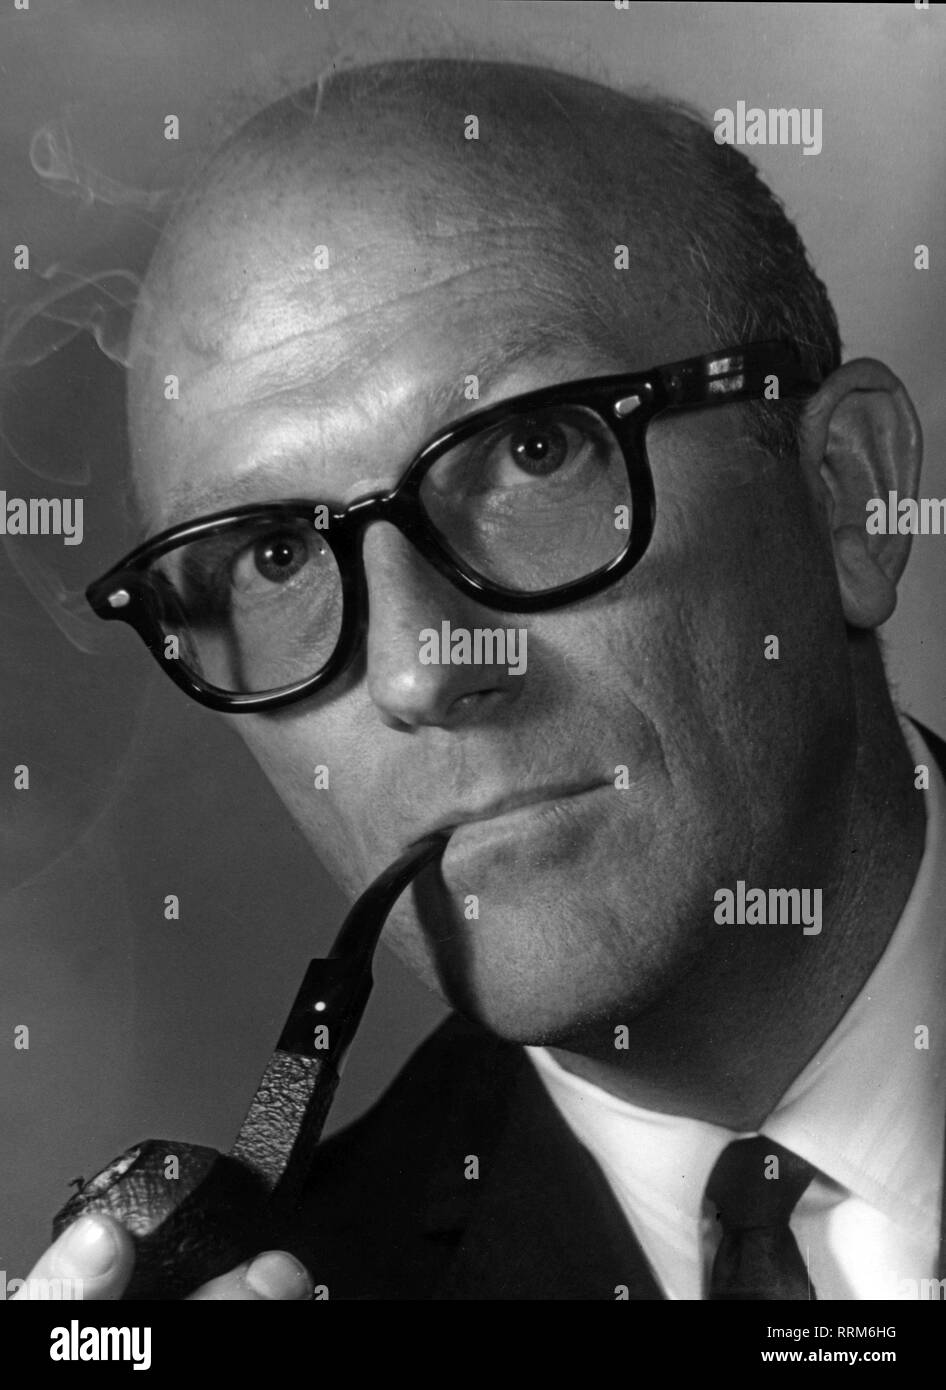 Vaughn, Billy, 12.4.1919 - 26.9.1991, American musician and singer, portrait, 1960s, Additional-Rights-Clearance-Info-Not-Available - Stock Image